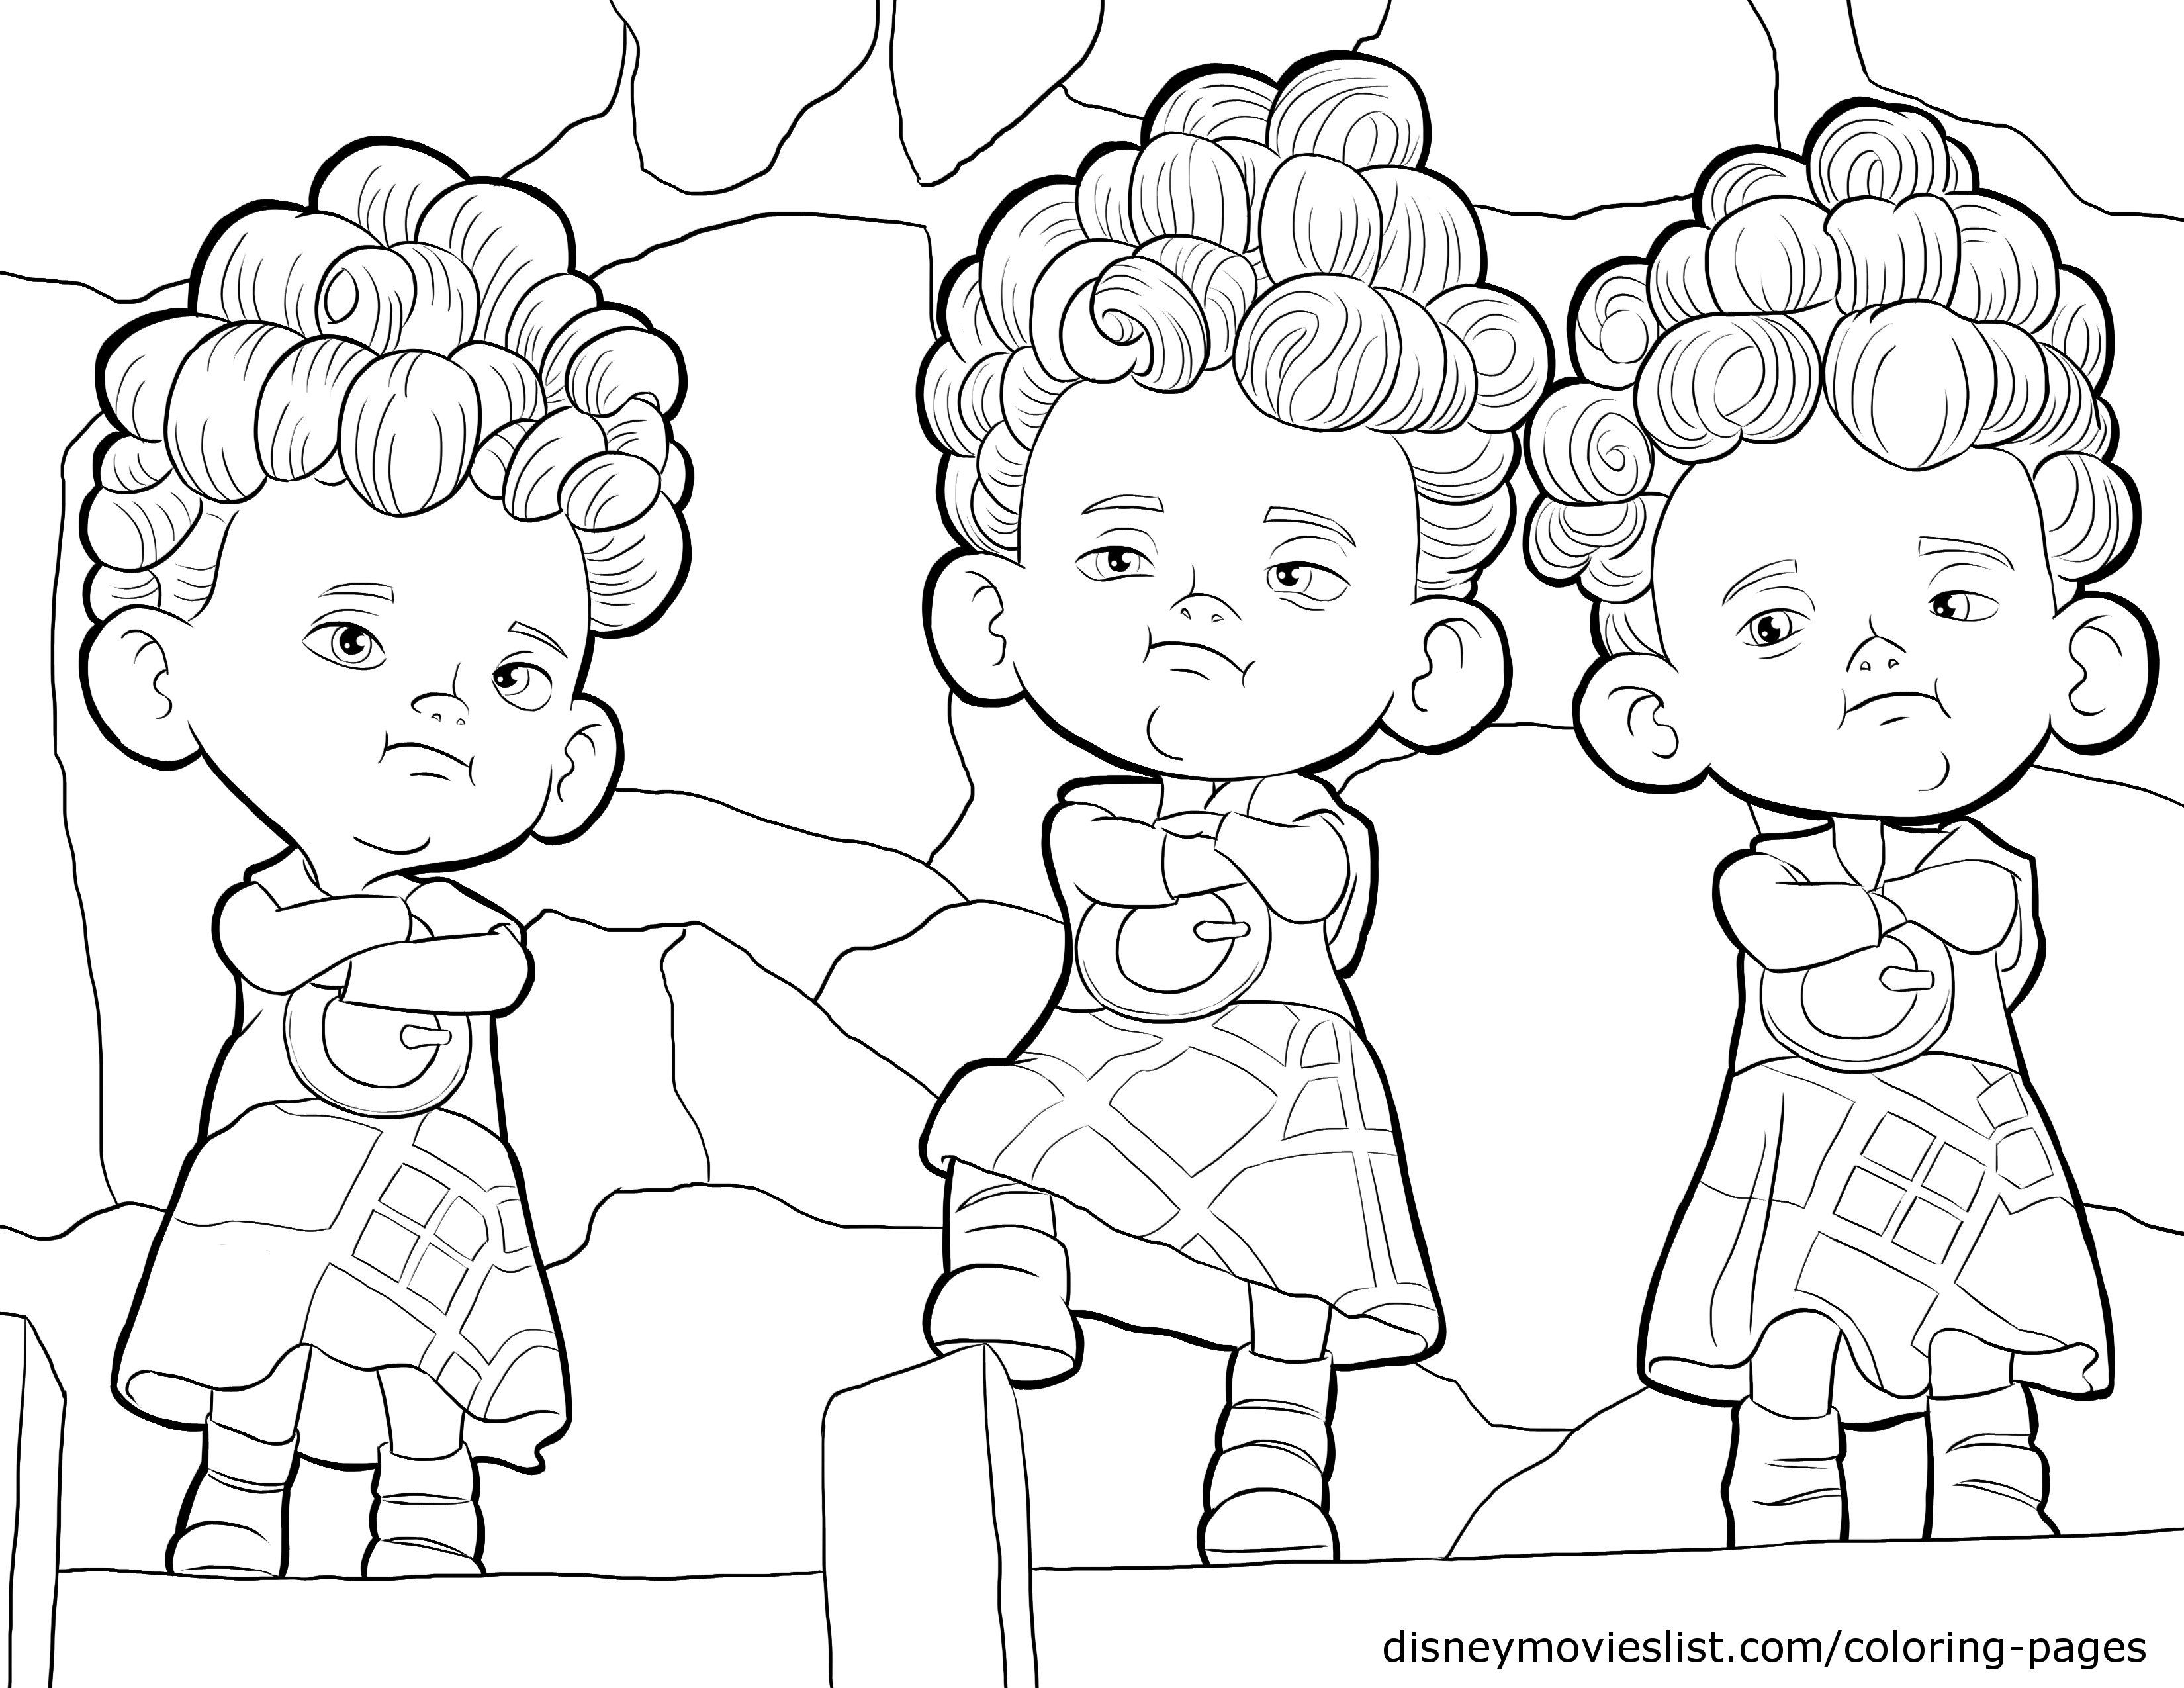 Disney Pixar Brave The Triplets Harris Hubert And Hamish Coloring Pages Sheet